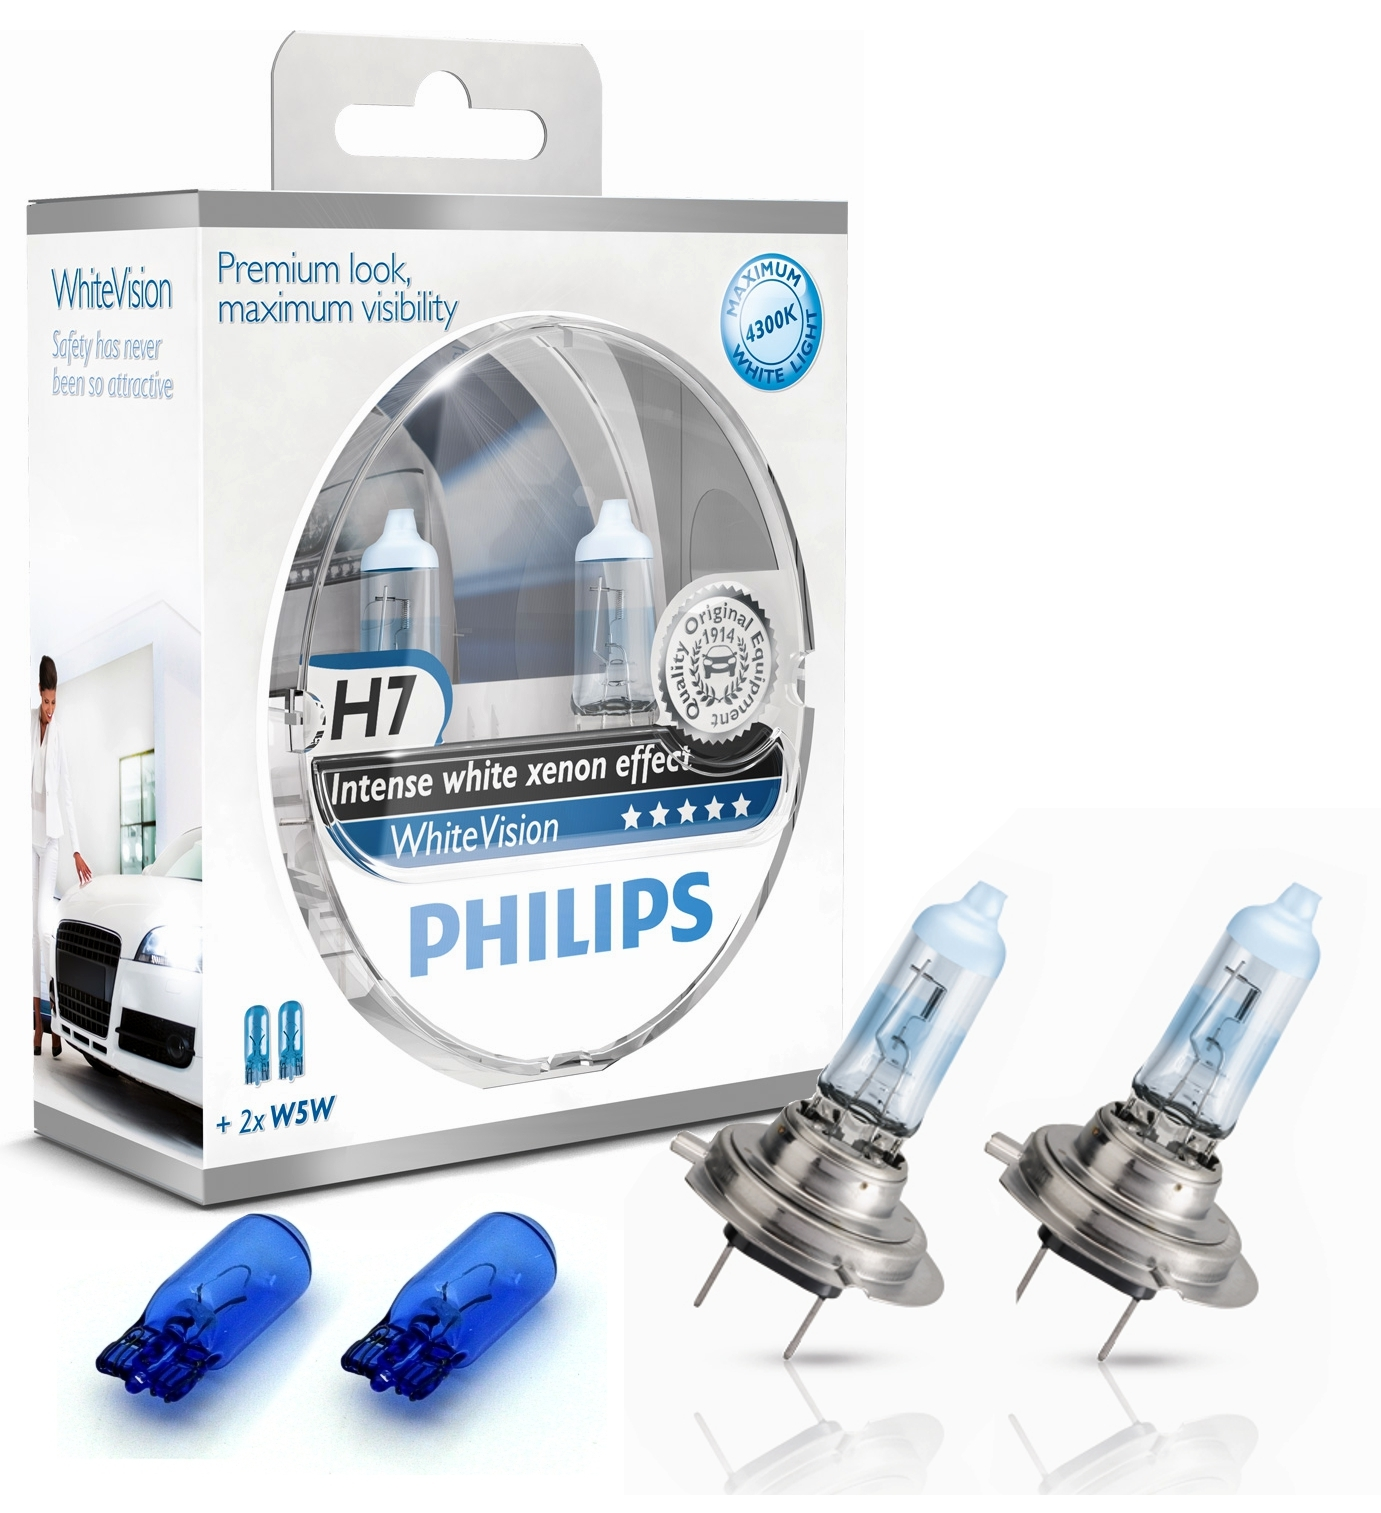 philips h7 whitevision xenoneffect 12v 55w ad tuning. Black Bedroom Furniture Sets. Home Design Ideas